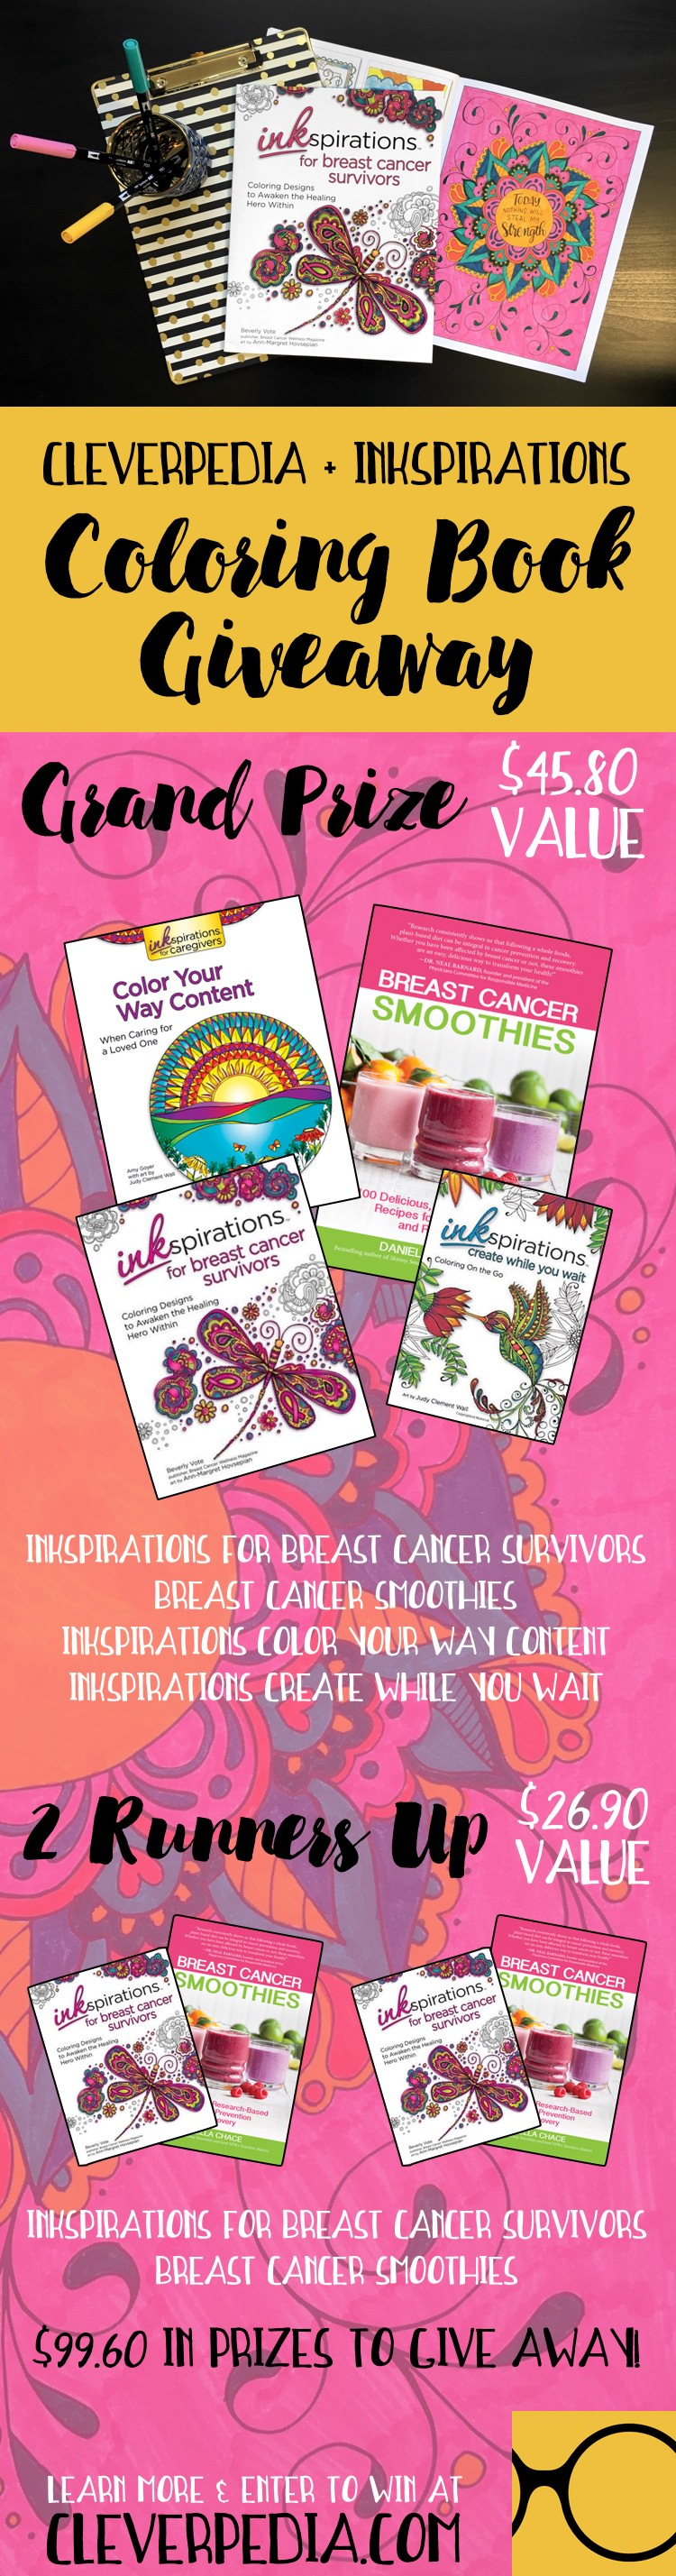 Inkspirations for breast cancer survivors review giveaway inkspirations for breast cancer survivors is an adult coloring book designed to encourage and empower women nvjuhfo Choice Image